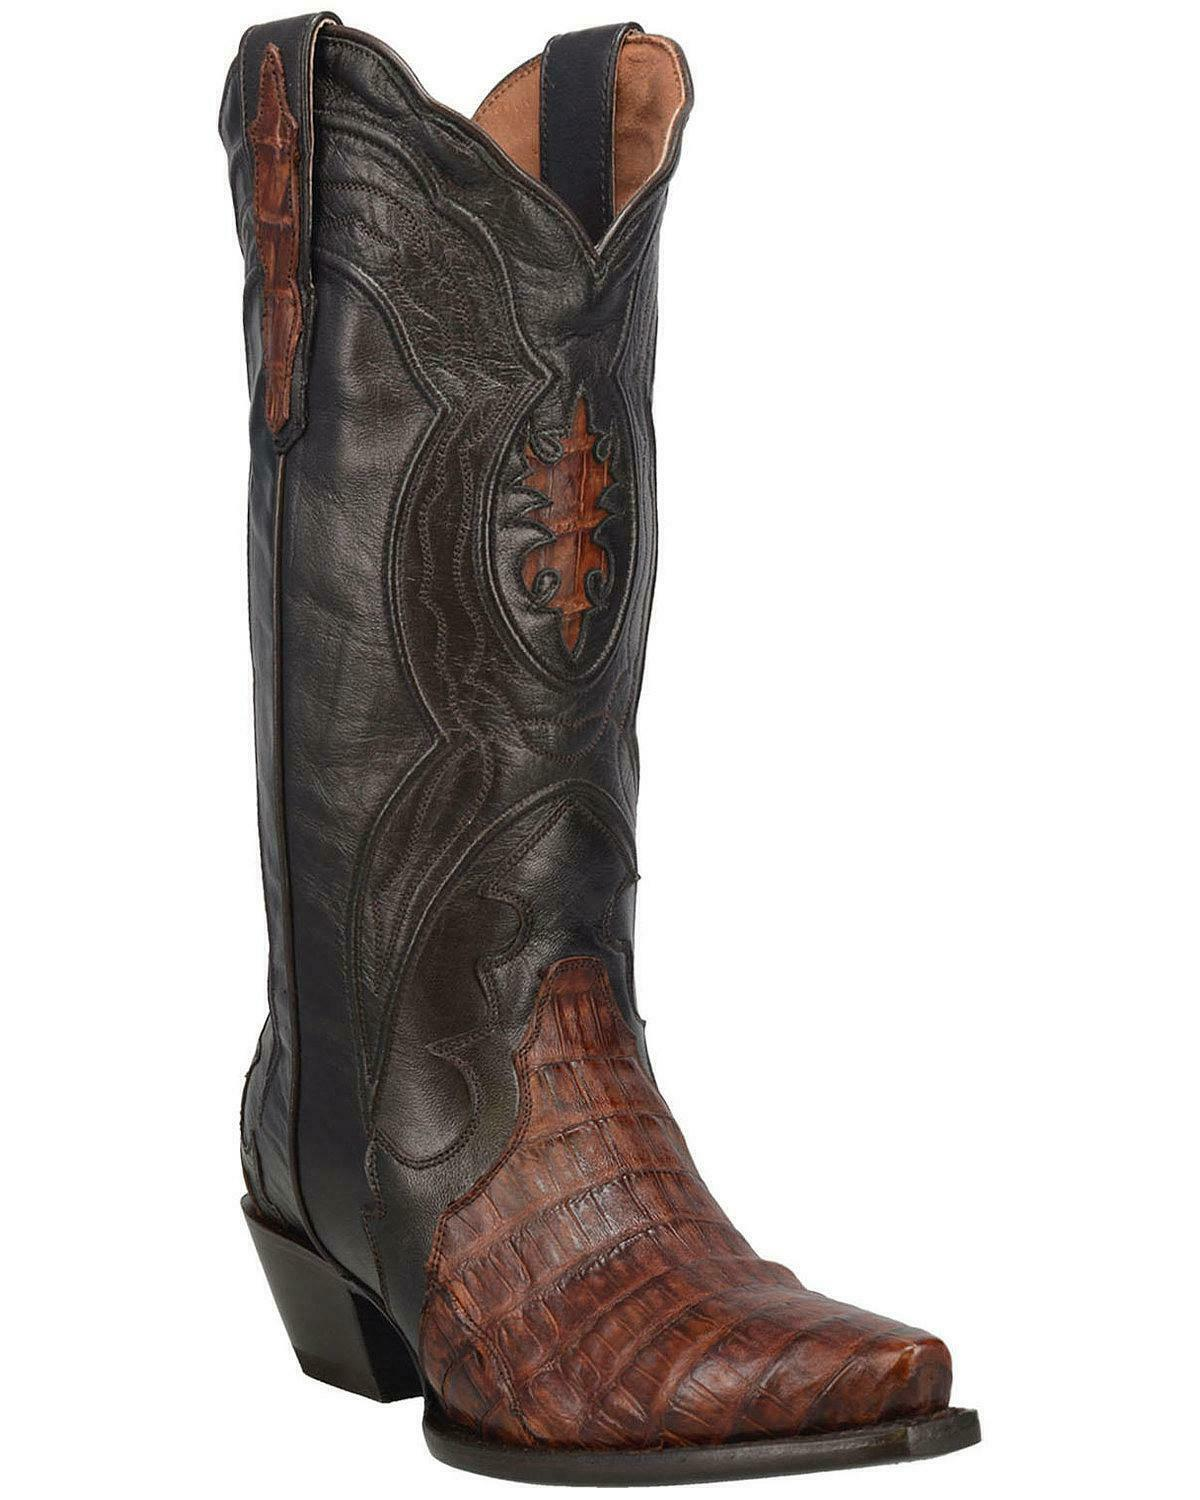 Women's Dan Post Catalina Boot #DP3079